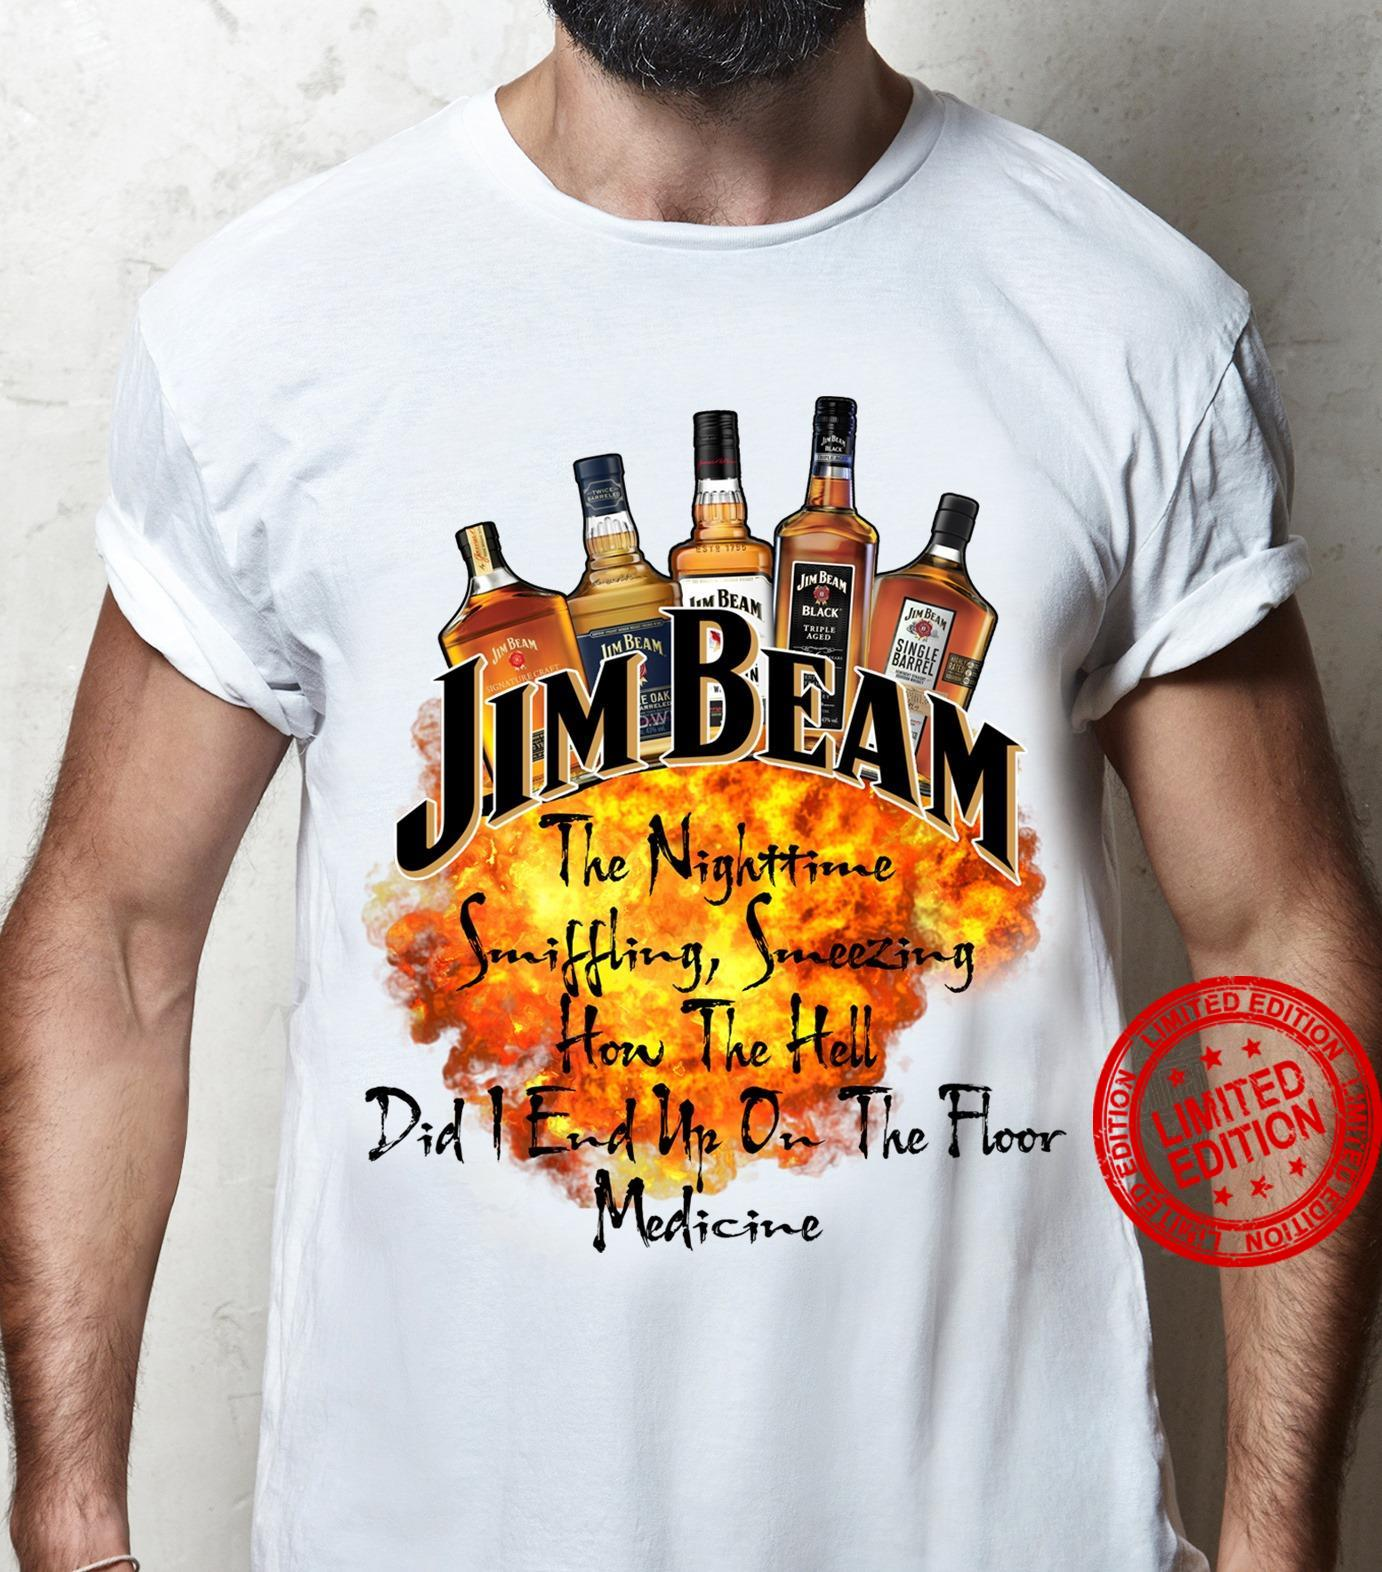 Jim Beam The Nighttime smiffhing Smeezing how The Hell Did I End Up On The Floor Medicine Shirt